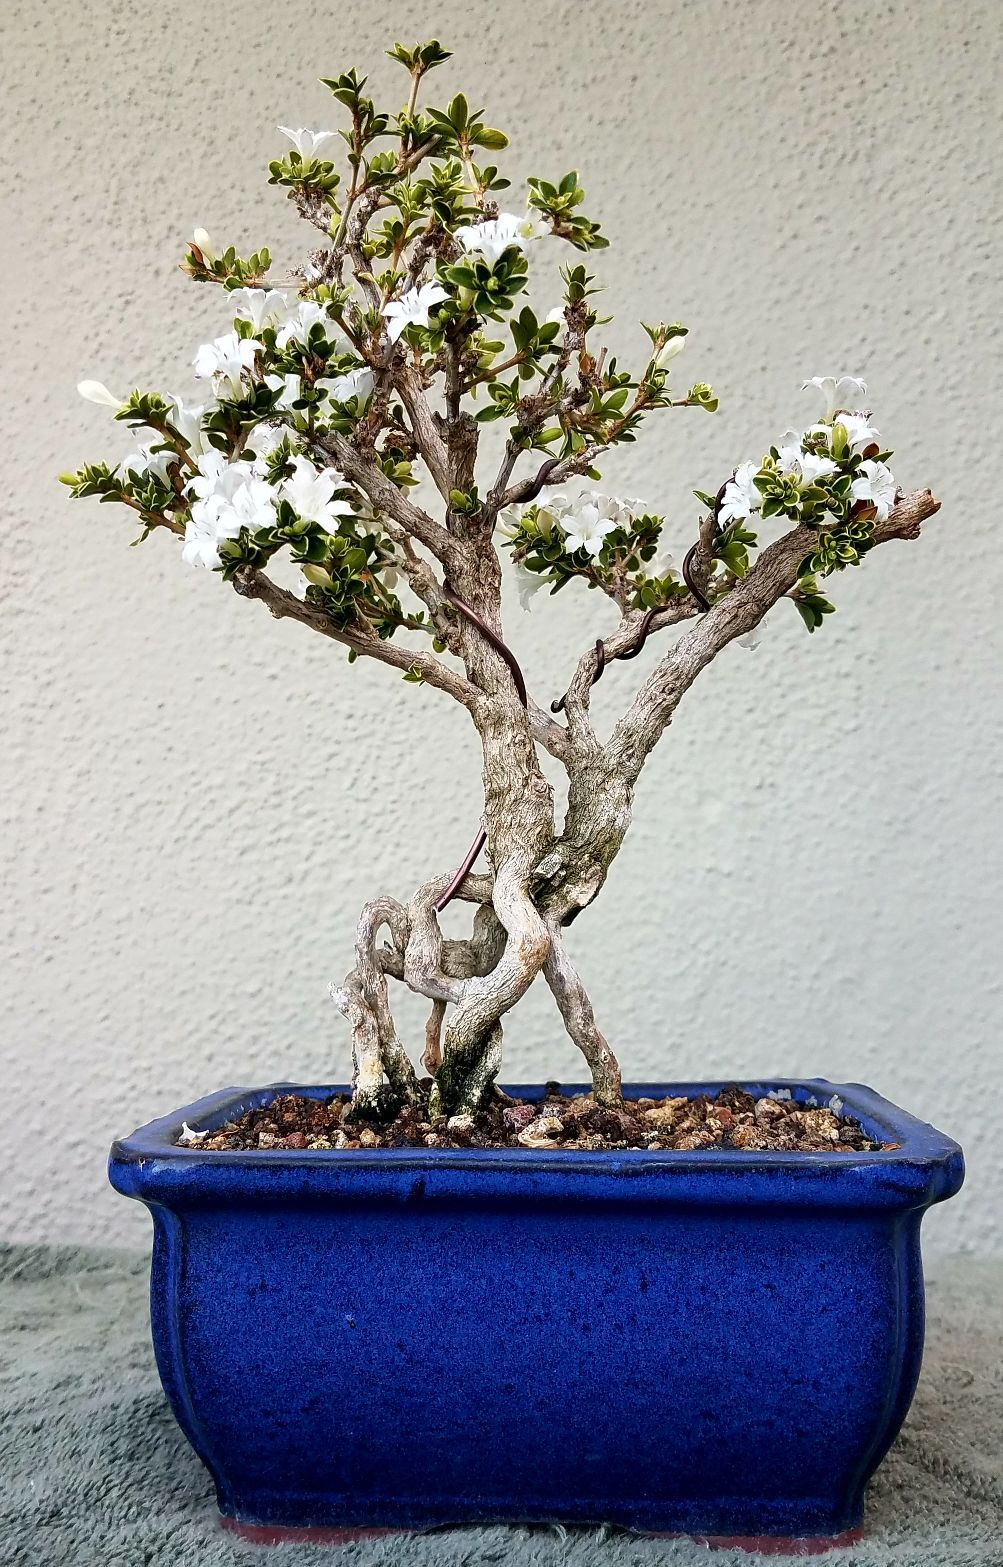 Wiring A Serissa Bonsai Diagrams Source Branches Picture 5 My Is Starting To Bloom 4 11 18 07 Leaves